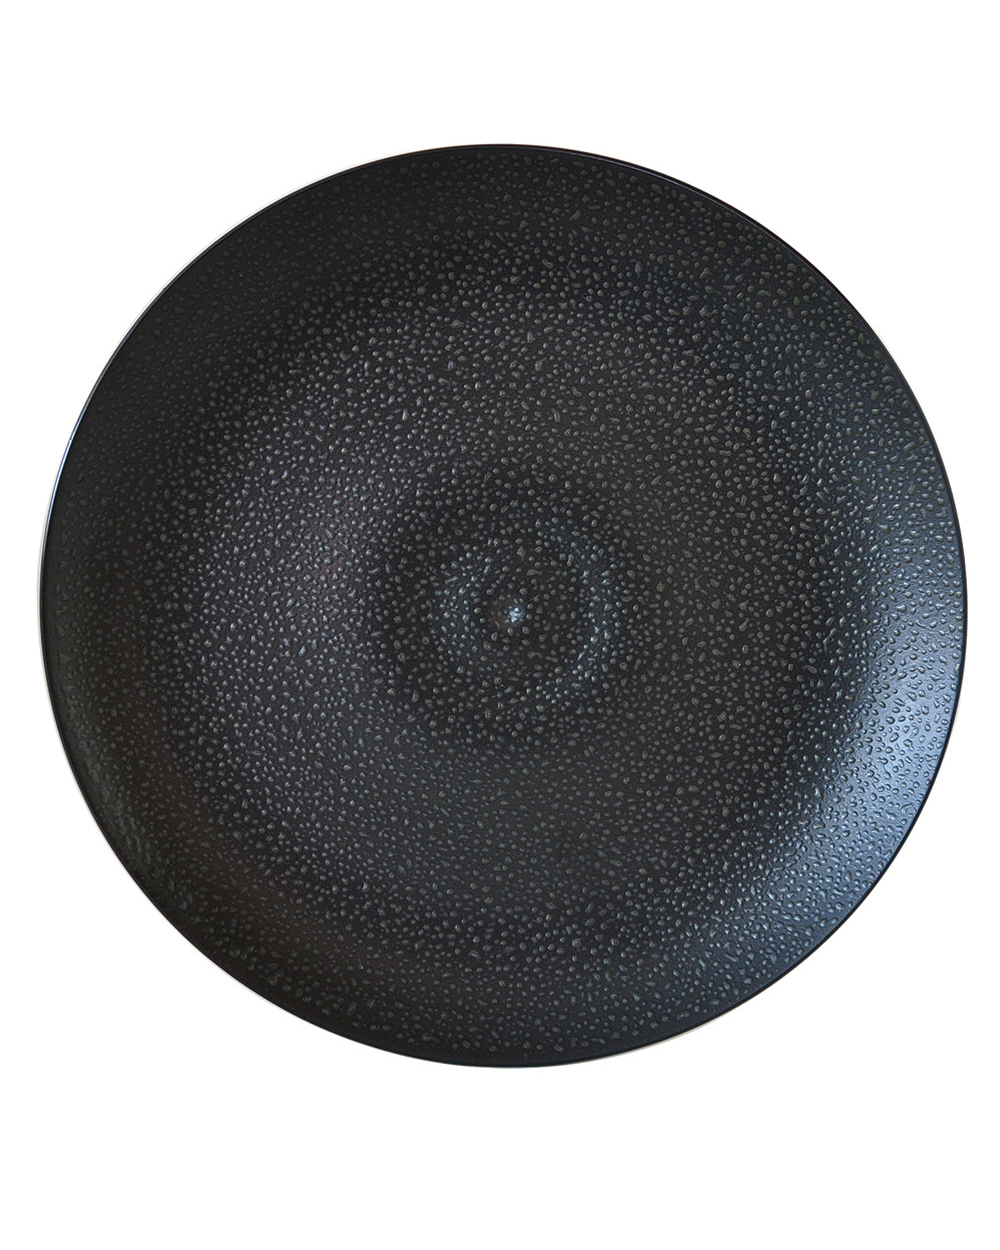 china-registry-luxe-bernardaud-bulle-sable-noir-salad-plate-1014.jpg